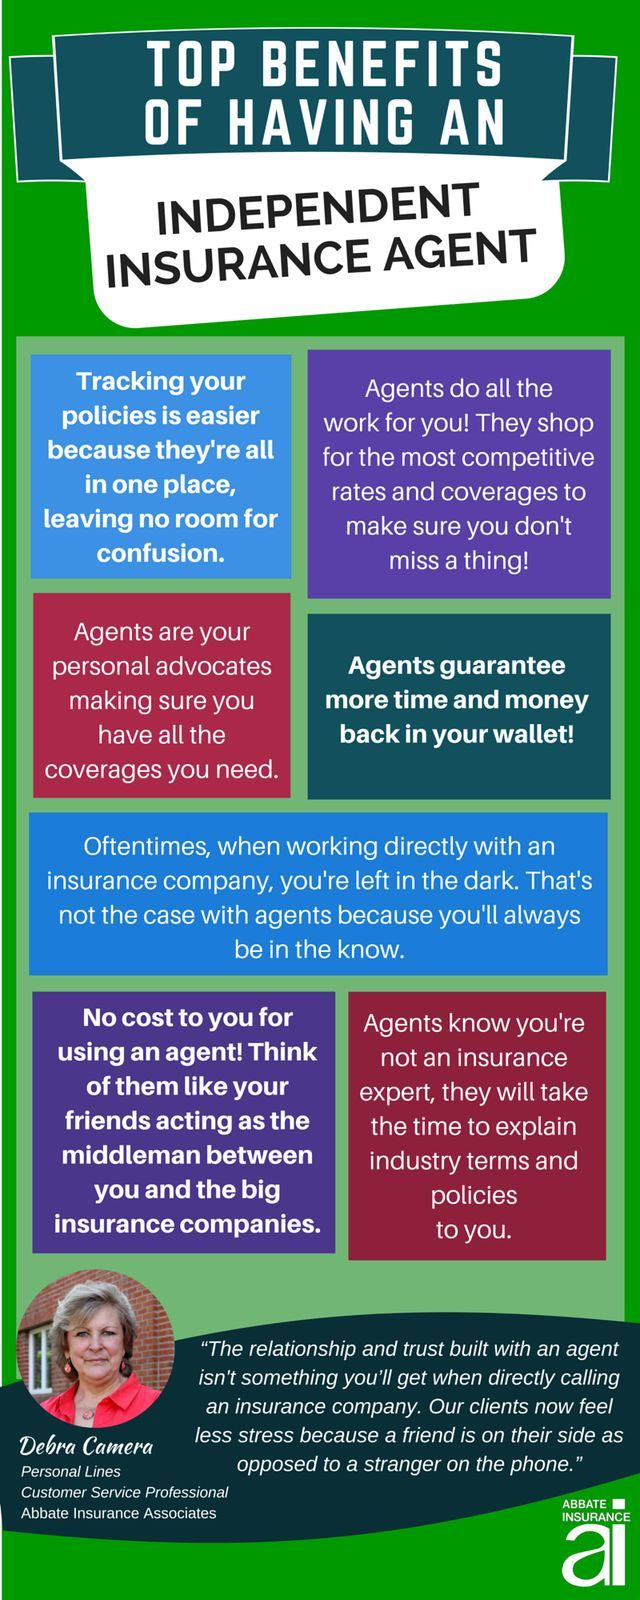 The Terms Insurance Agent And Insurance Brokers Might Be Used